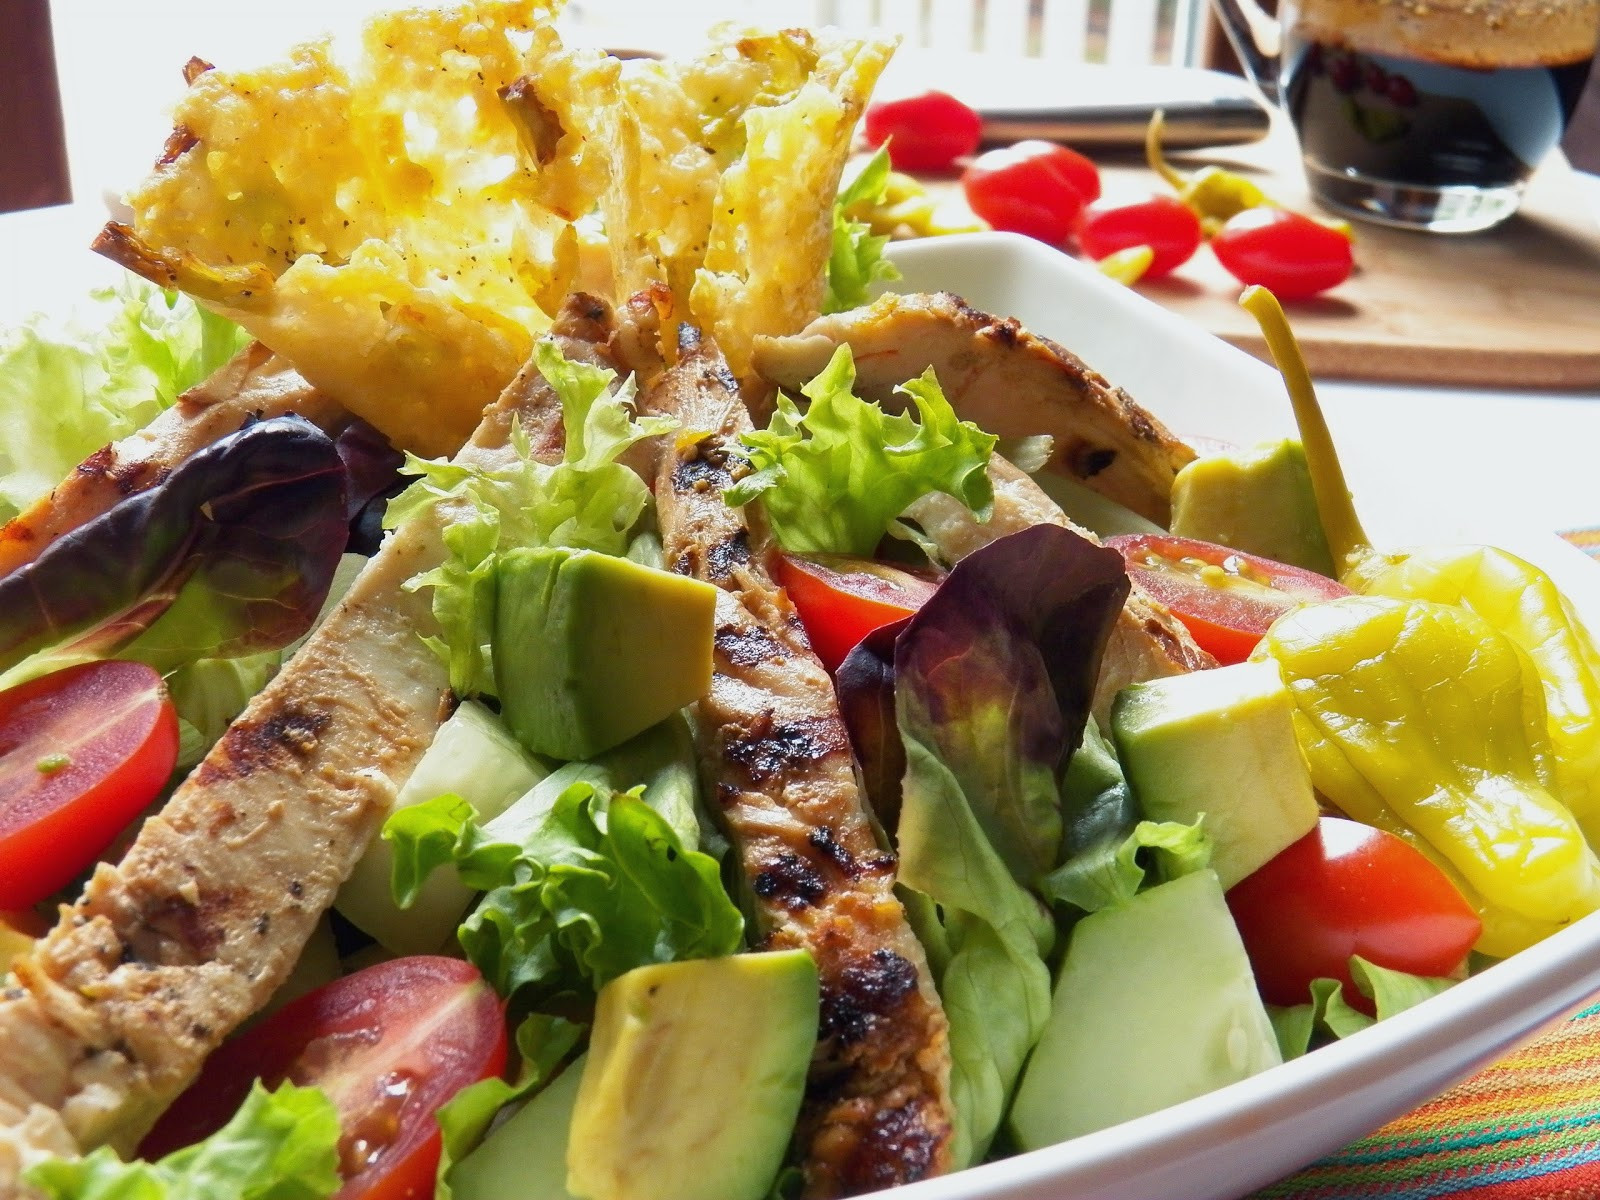 Grilled Chicken Salad Calories  calories in grilled chicken salad with balsamic dressing